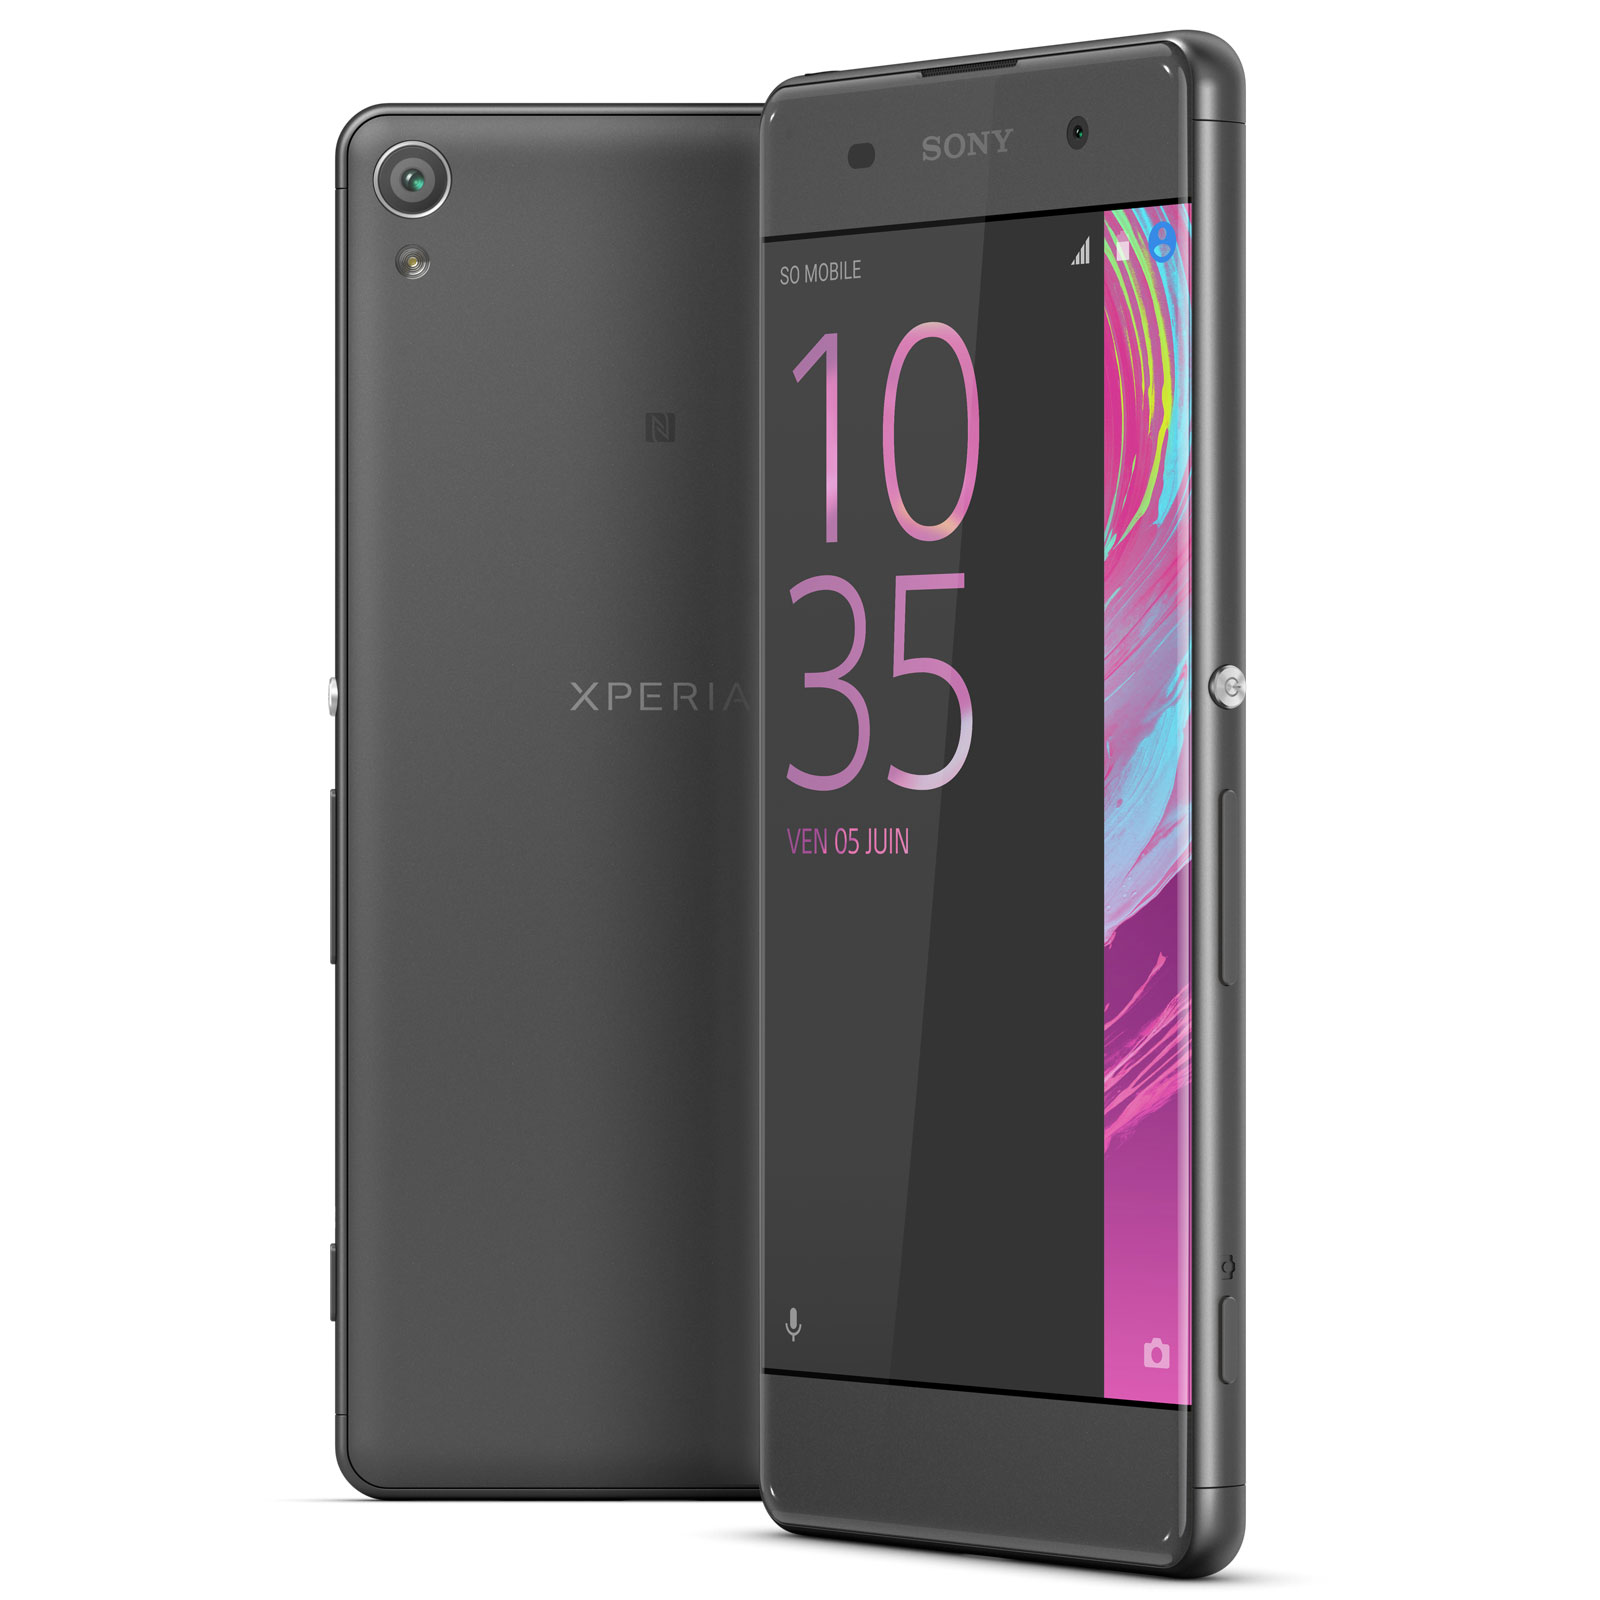 sony xperia xa dual sim 16 go noir 1303 0335 achat vente mobile smartphone sur. Black Bedroom Furniture Sets. Home Design Ideas